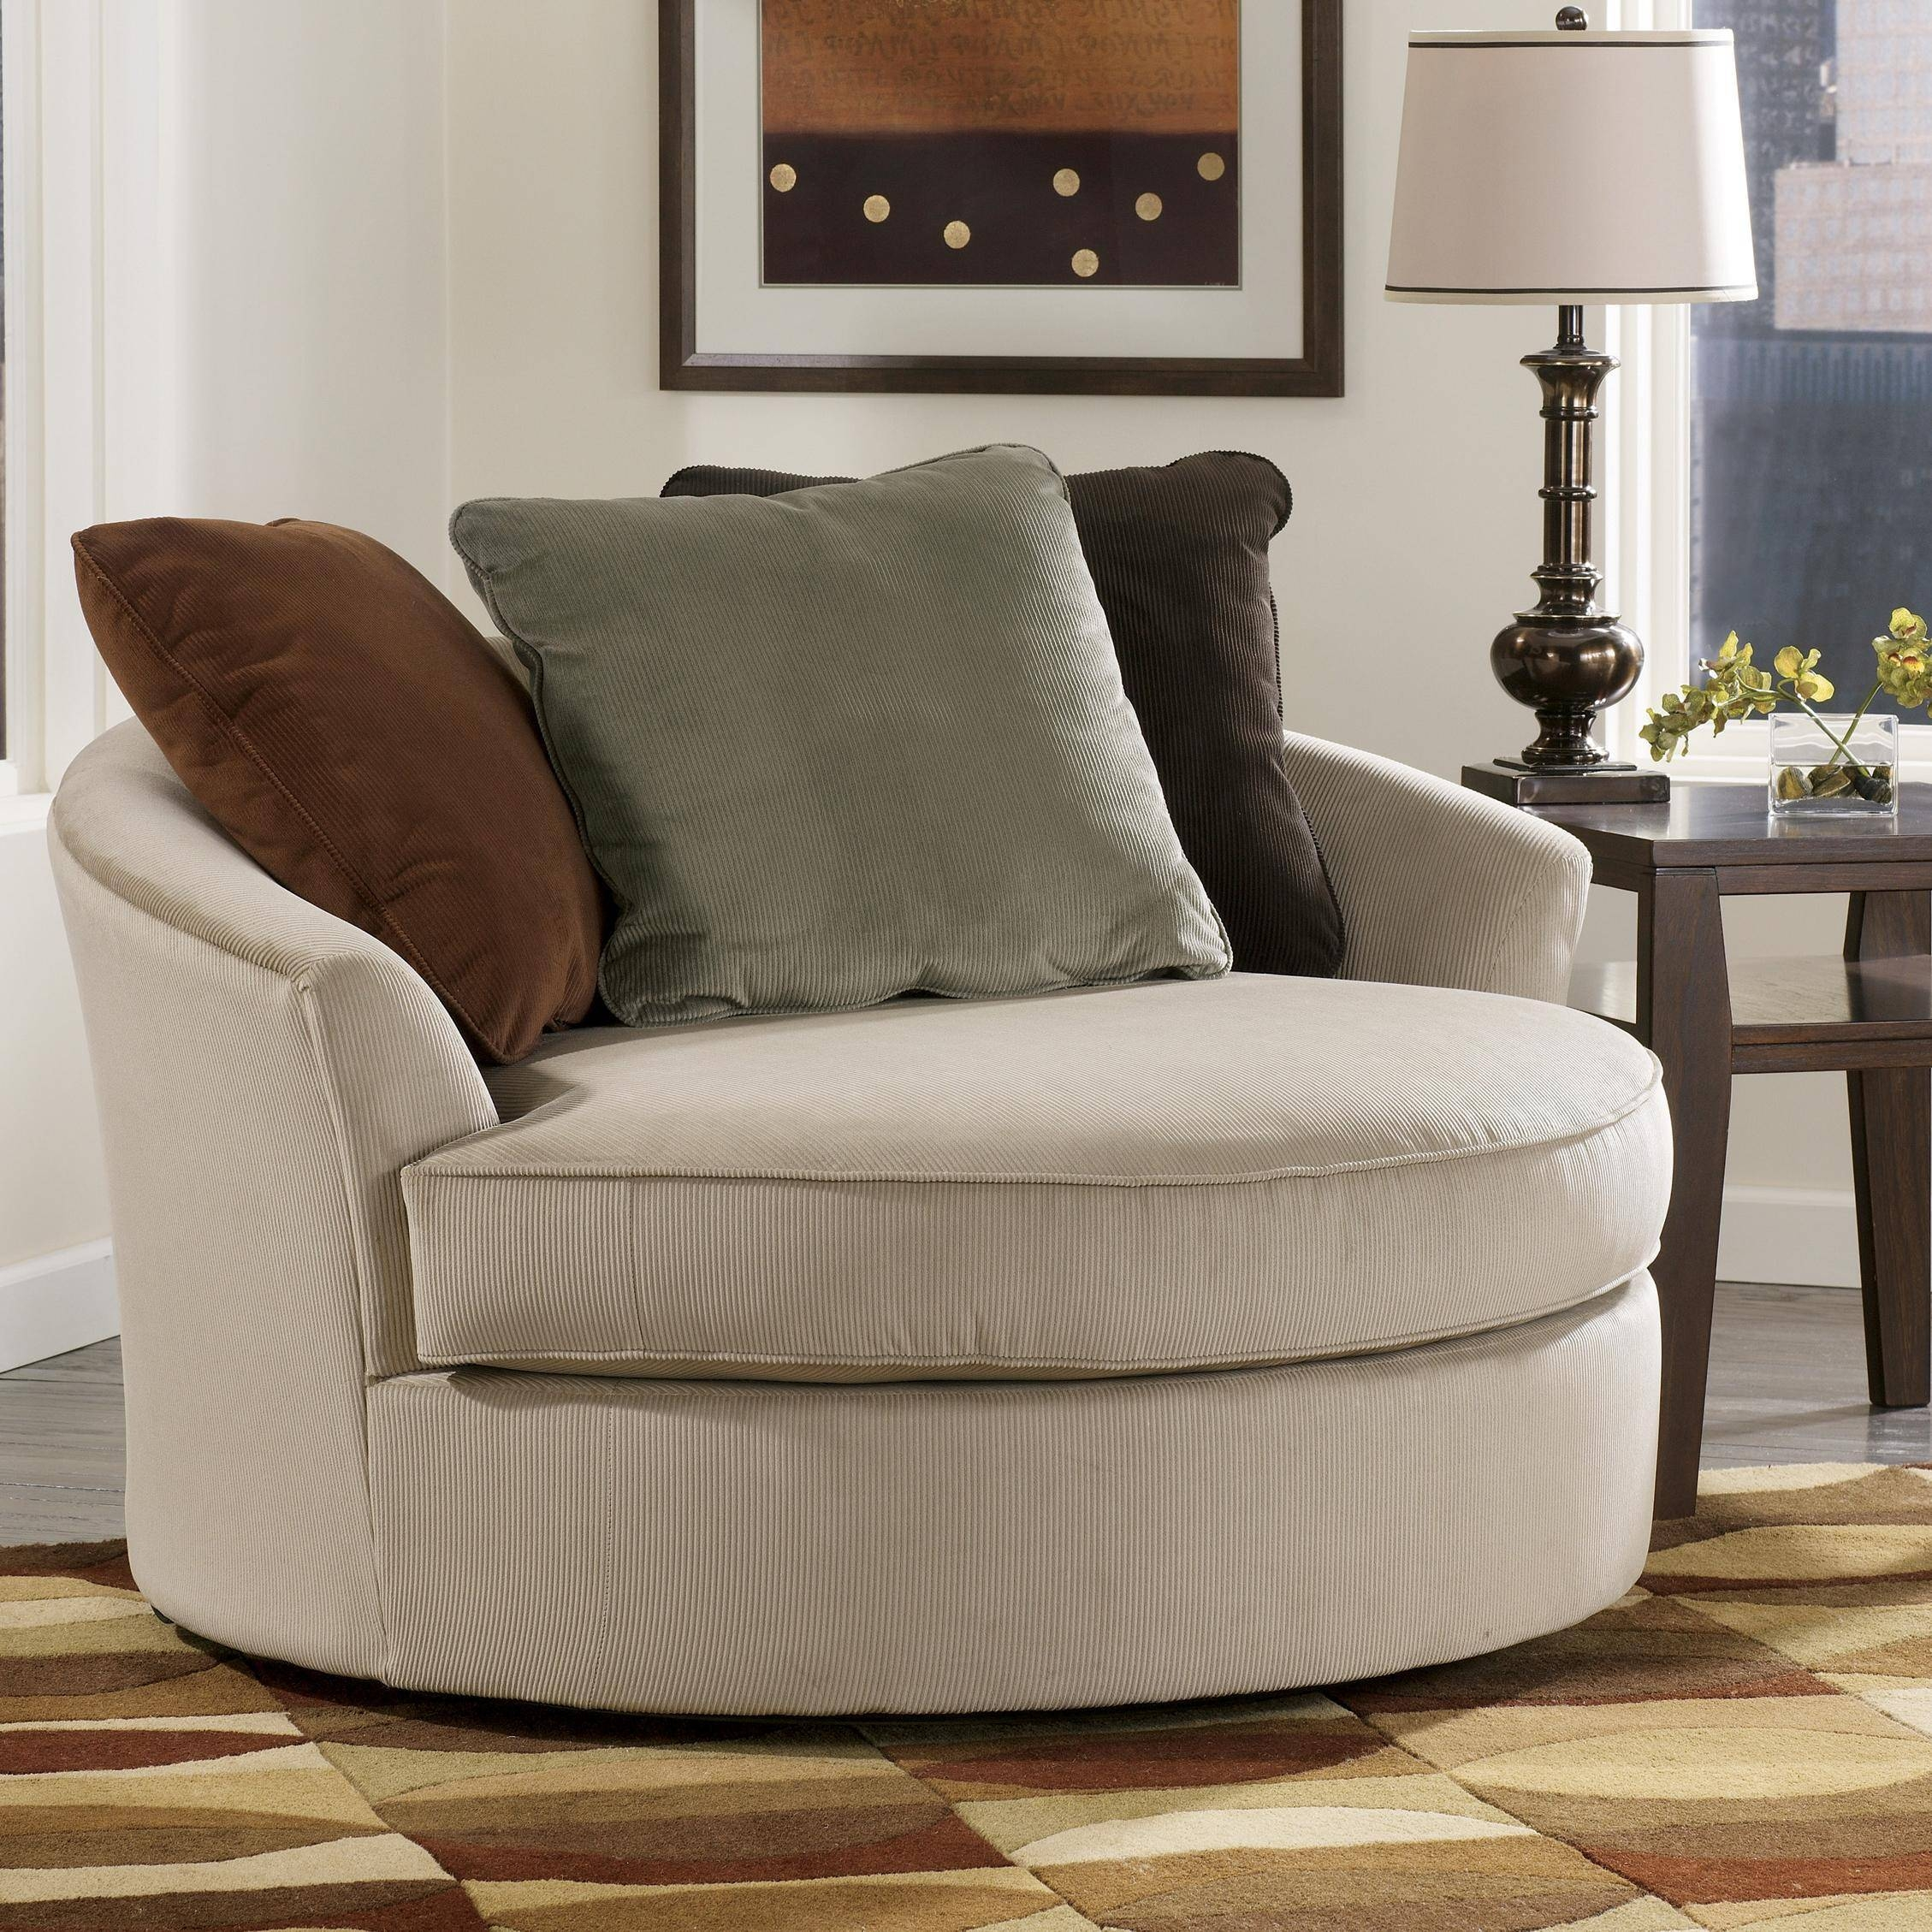 2019 Best of Round Sofa Chair Living Room Furniture